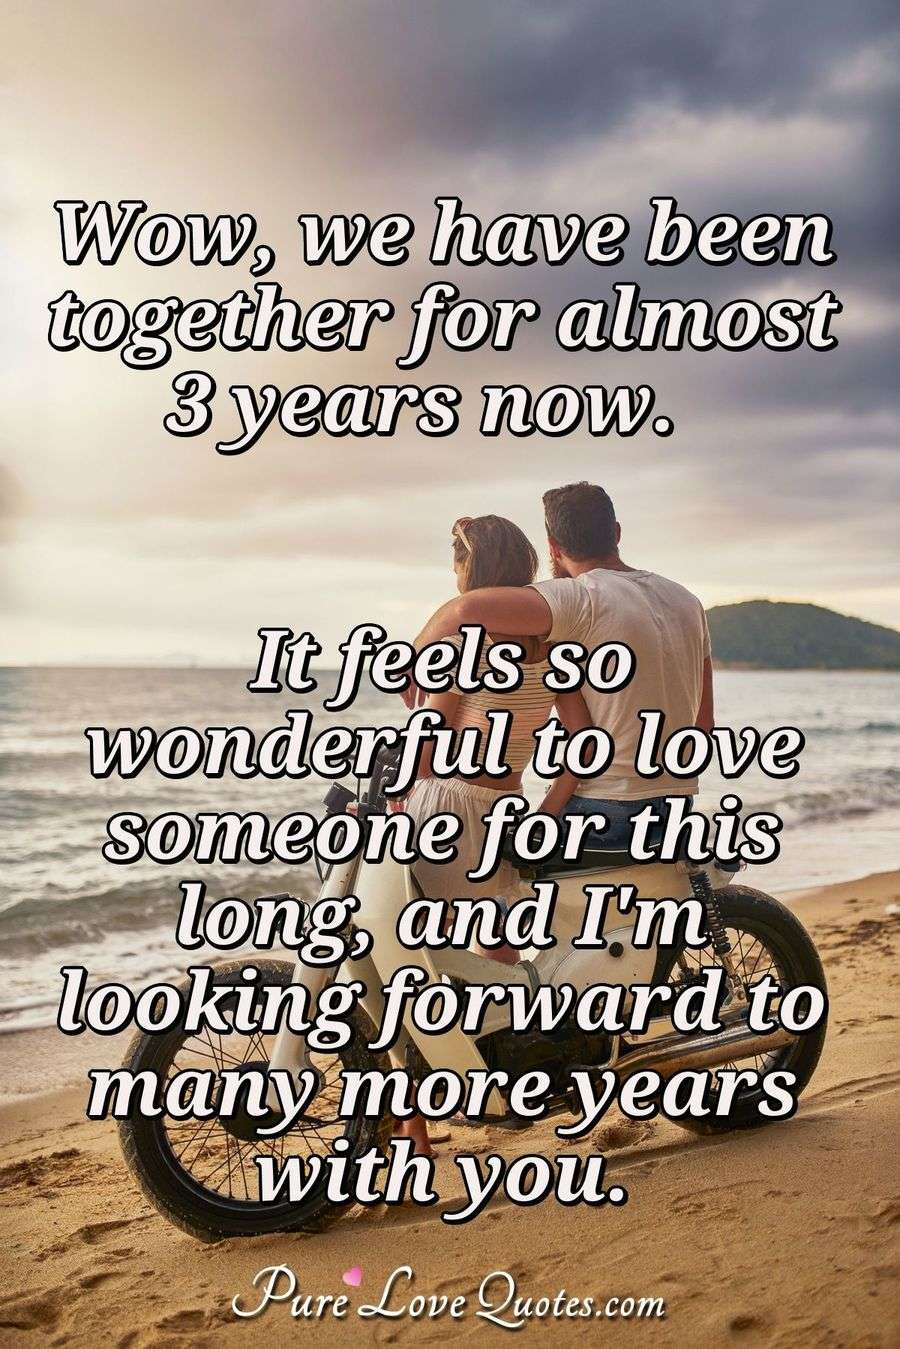 Almost One Year Anniversary Quotes: Wow, We Have Been Together For Almost 3 Years Now. It